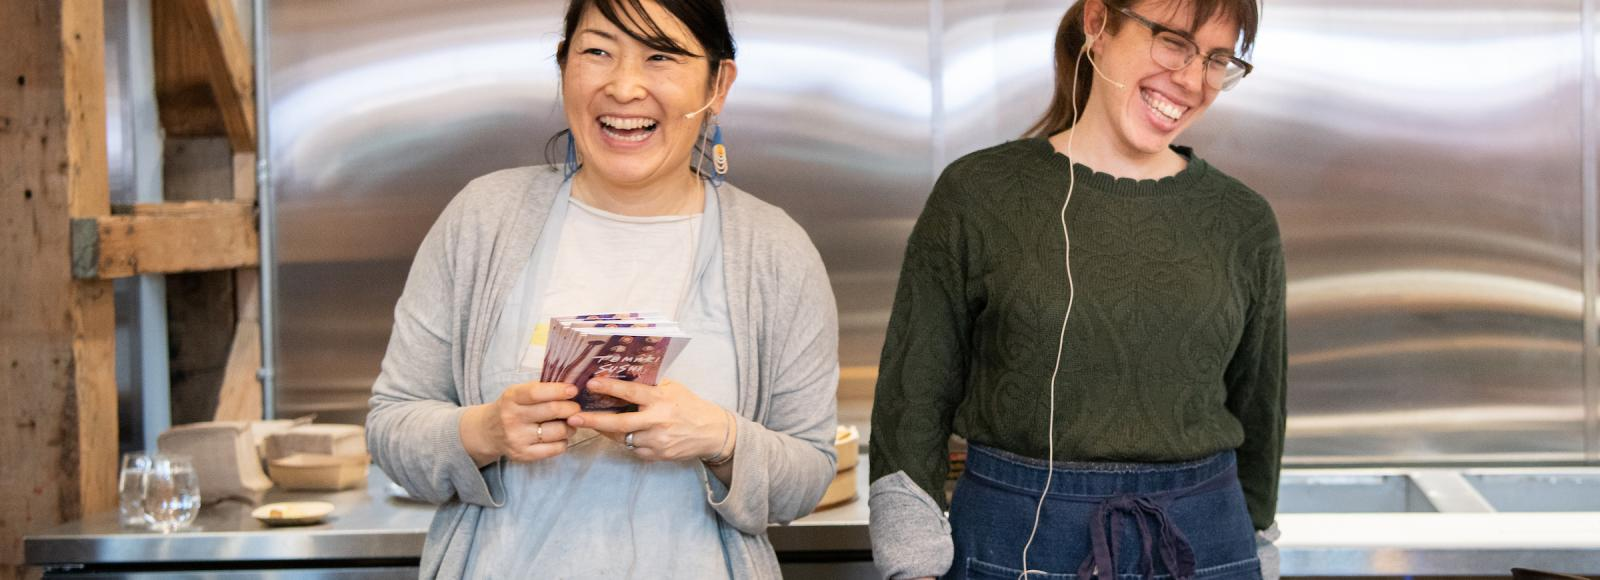 Two smiling women stand behind a large stove in an open demonstration kitchen.